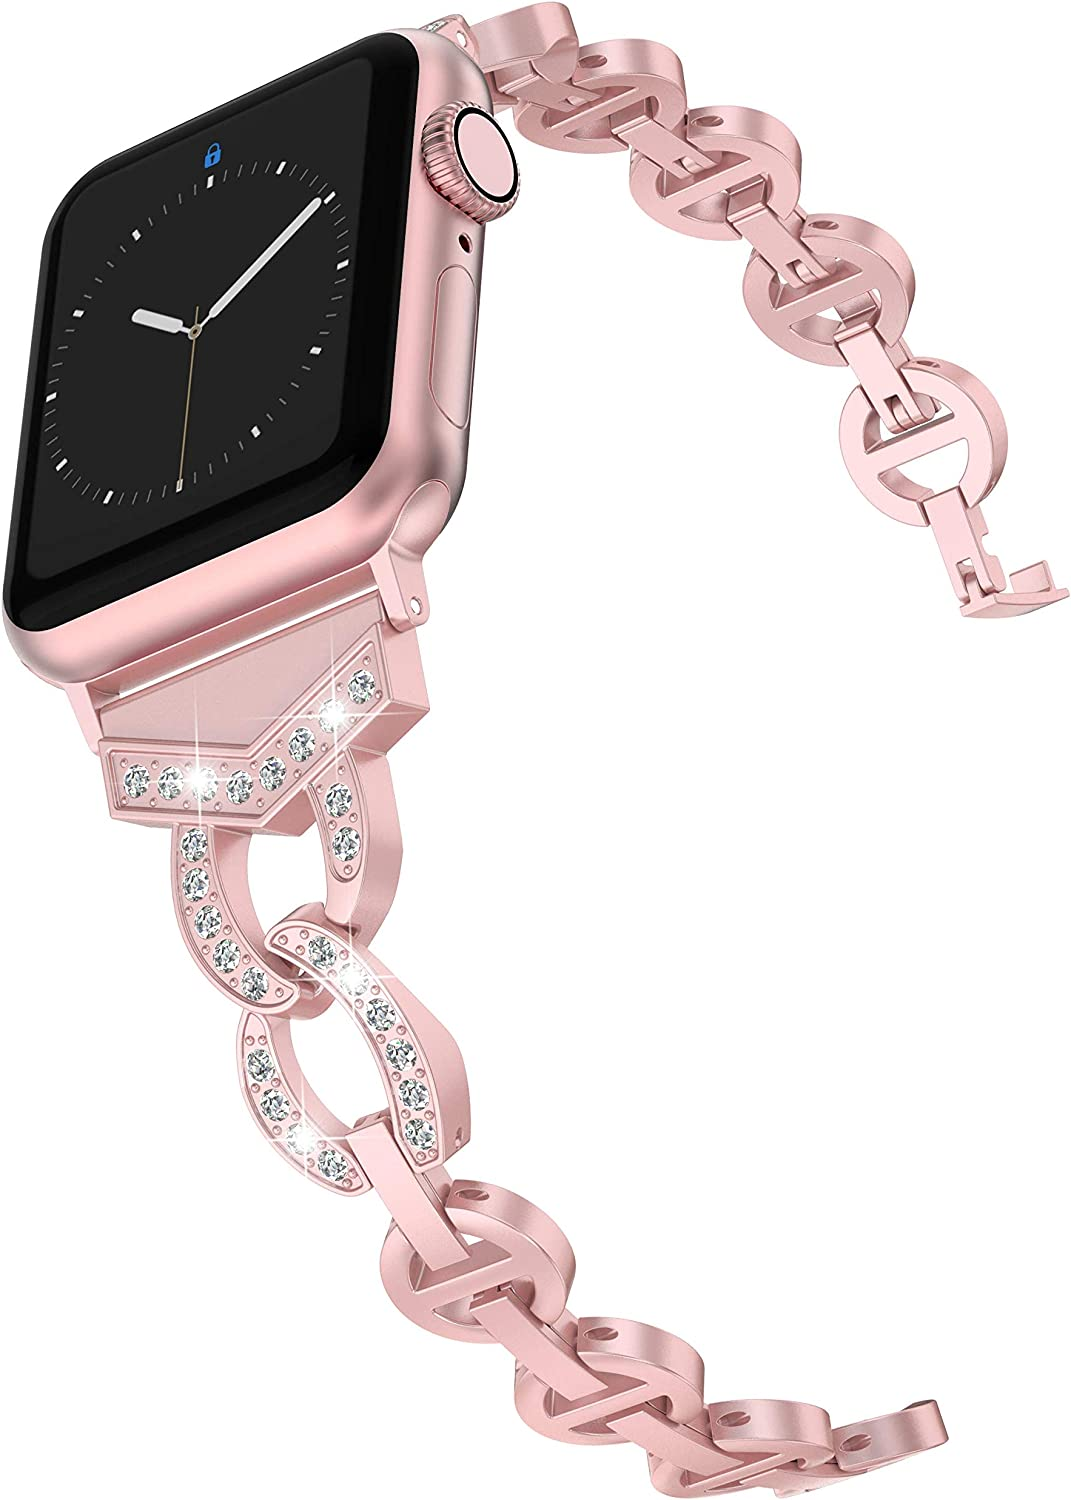 Wearlizer Rose Gold Bands Compatible with Apple Watch Band 42mm 44mm Rhinestone Wristband Women Replacement Wrist Strap for Apple Watch SE Series 6 5 4 3 2 1-42mm 44mm Rose Gold